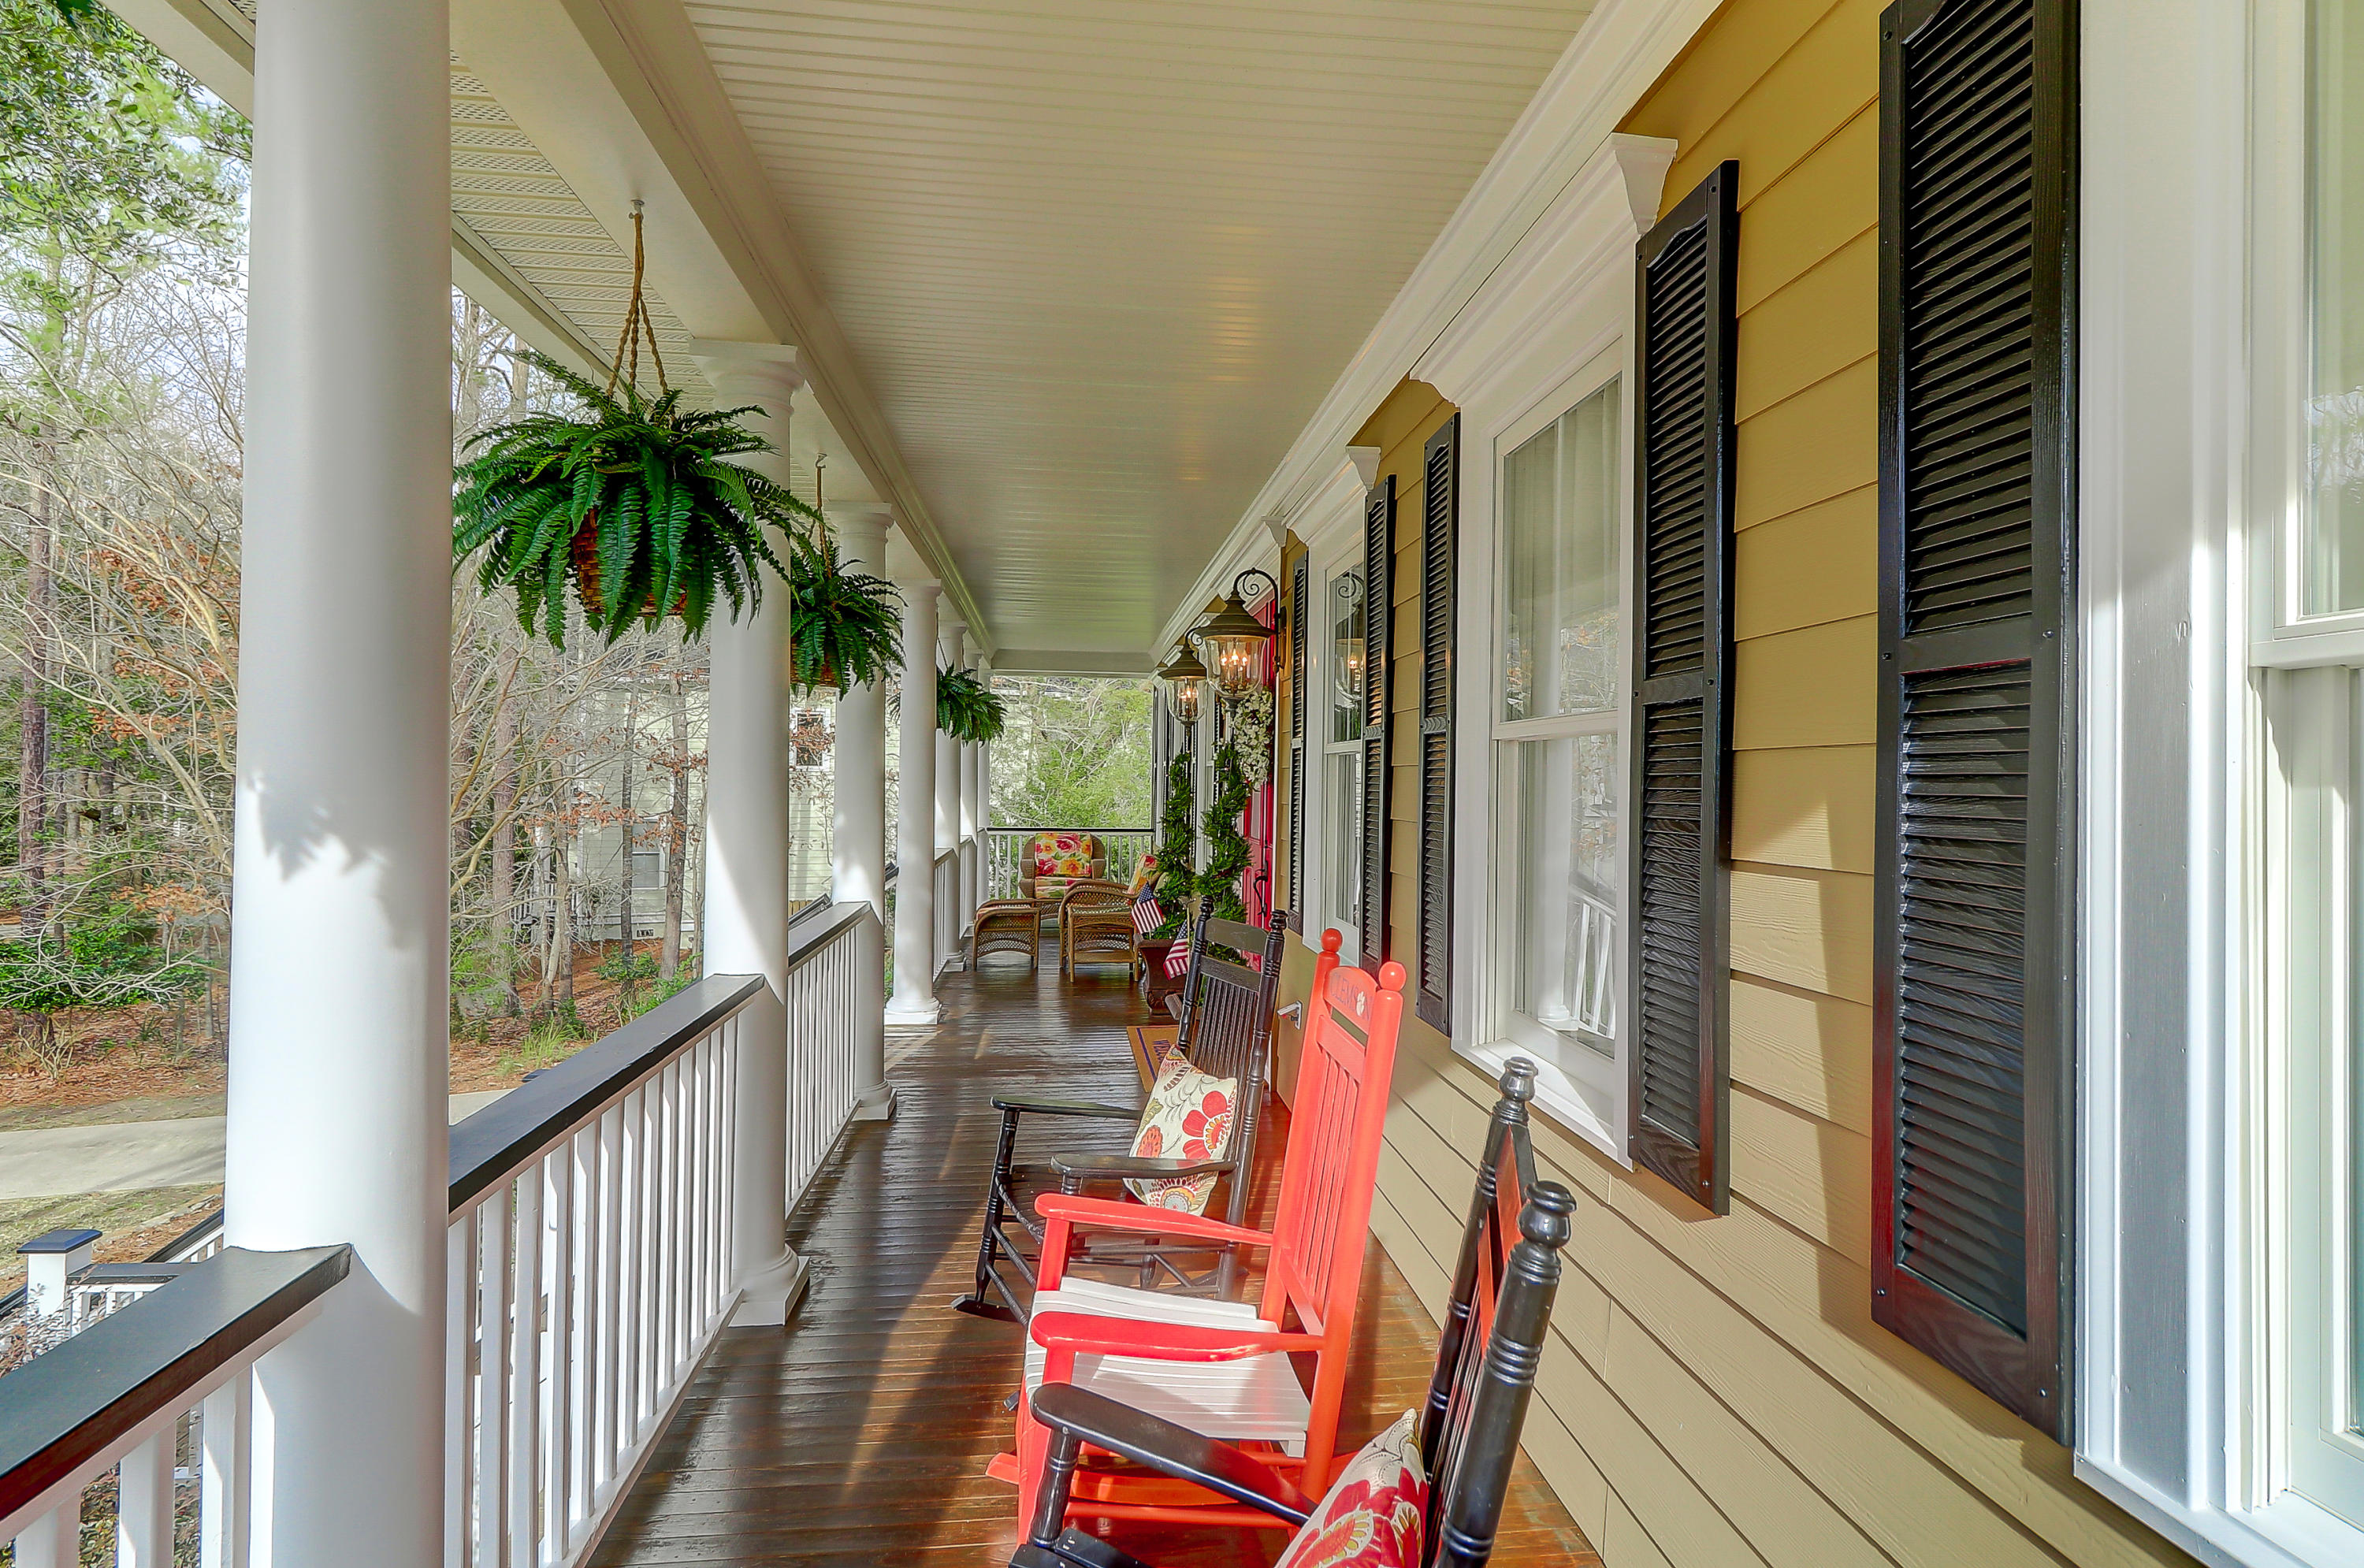 Dunes West Homes For Sale - 1764 Greenspoint, Mount Pleasant, SC - 53